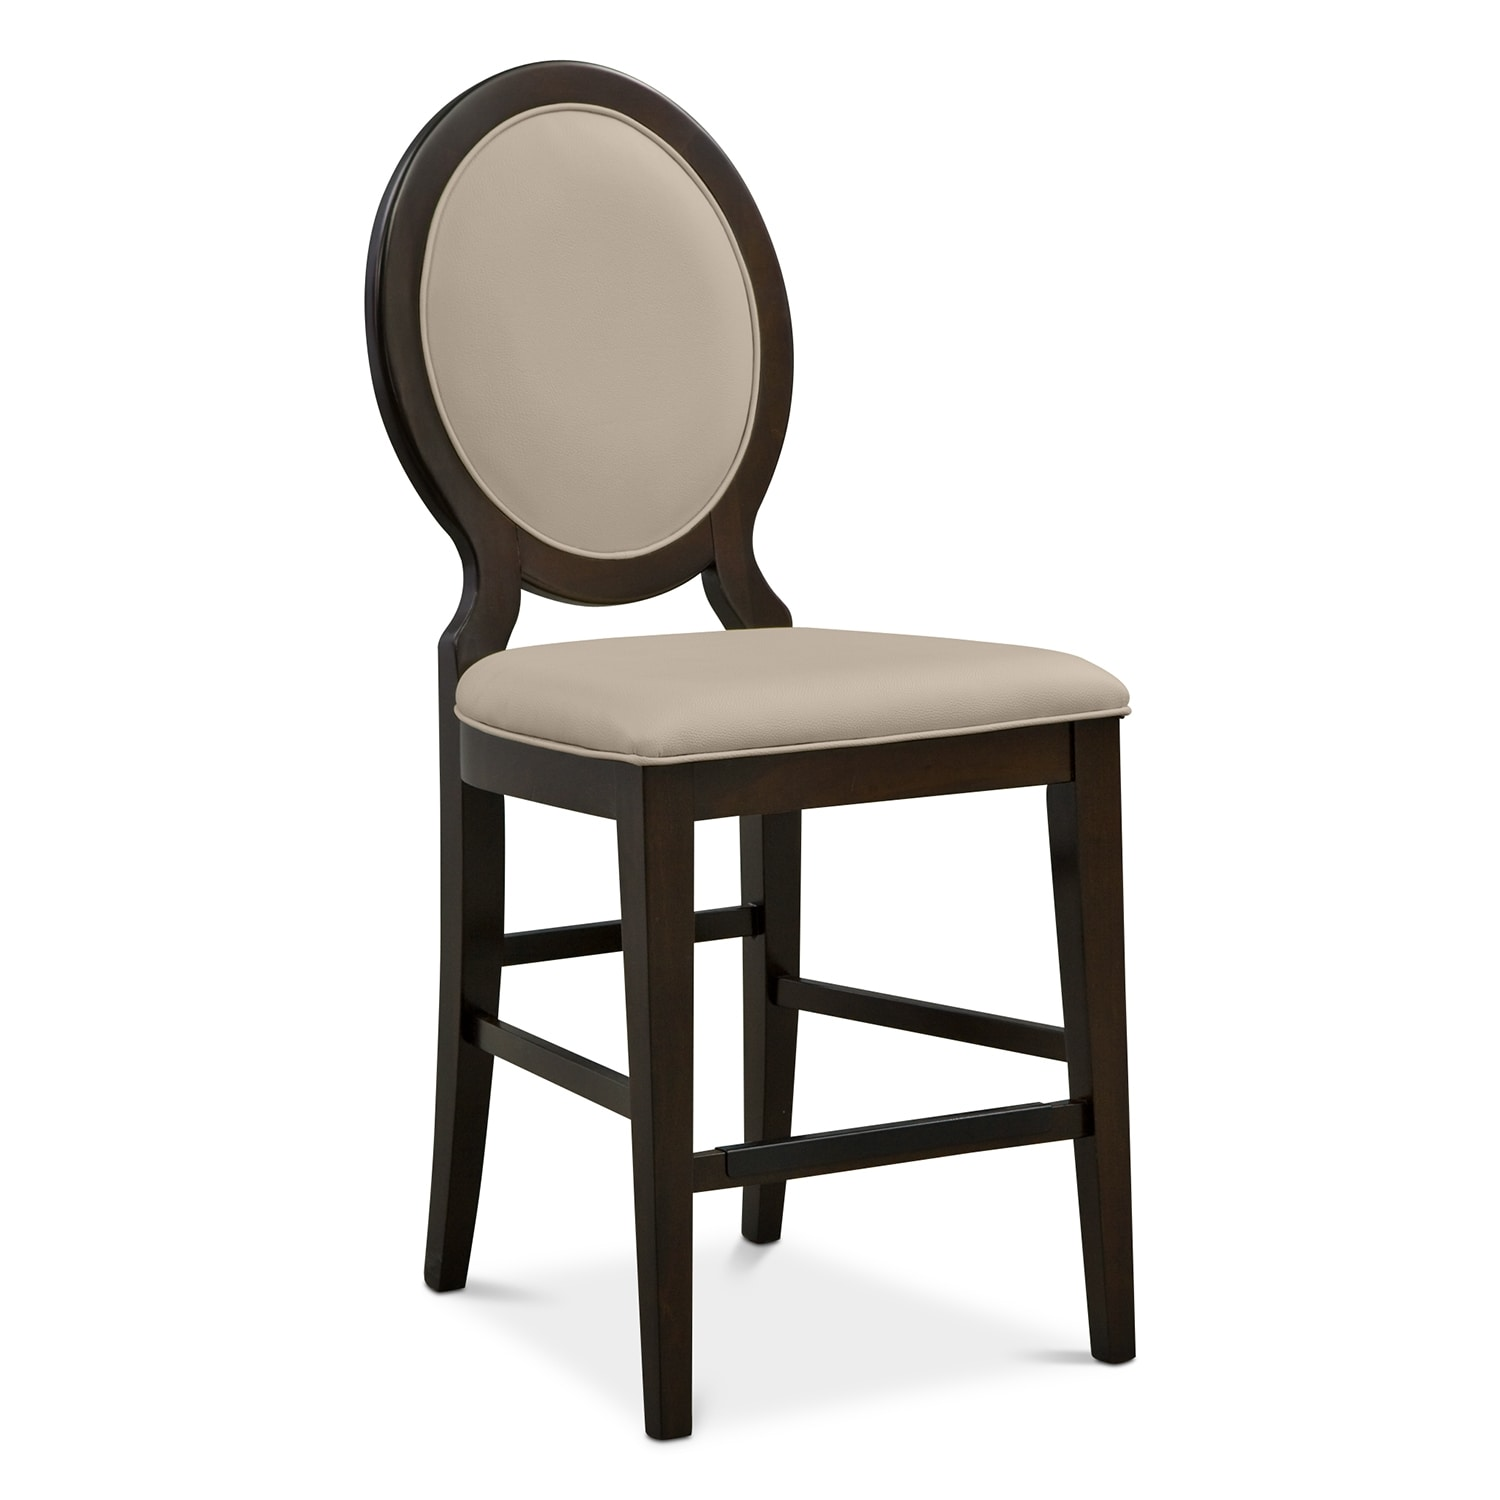 Counter Height Vs Bar Stool : ... Signature Furniture - Cosmo II Dining Room Counter-Height Stool